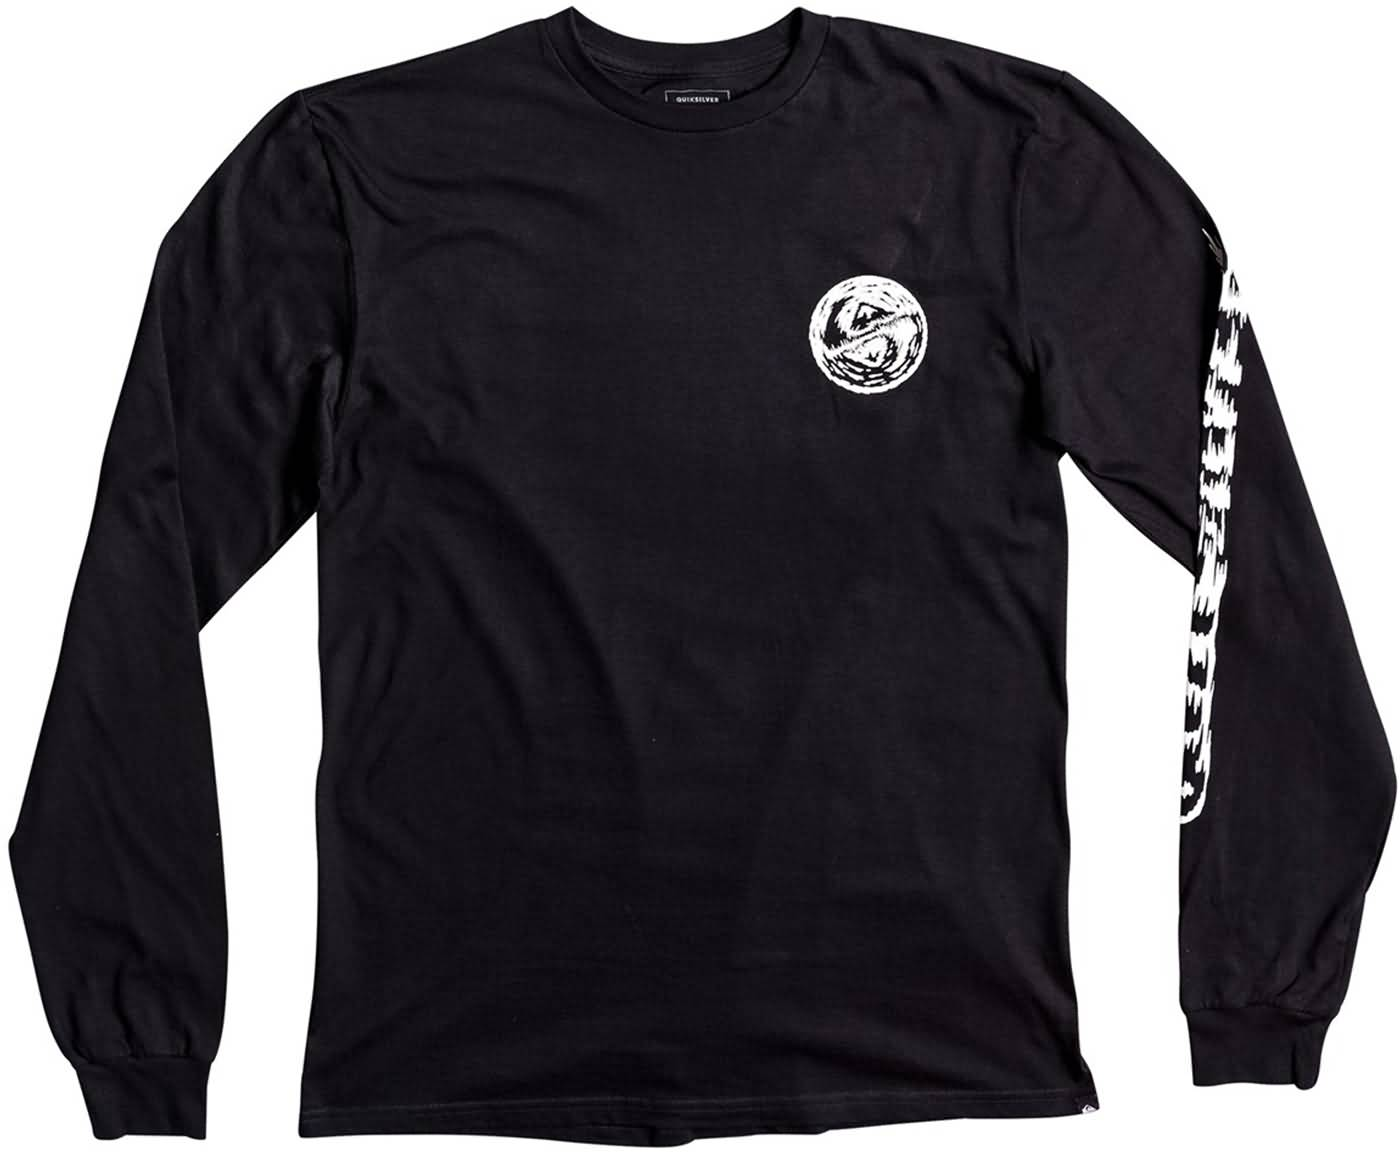 Quiksilver plain black t shirt - Quiksilver Surf Fall 2017 Mens Lifestyle Tee Shirts Preview Black Kvj0